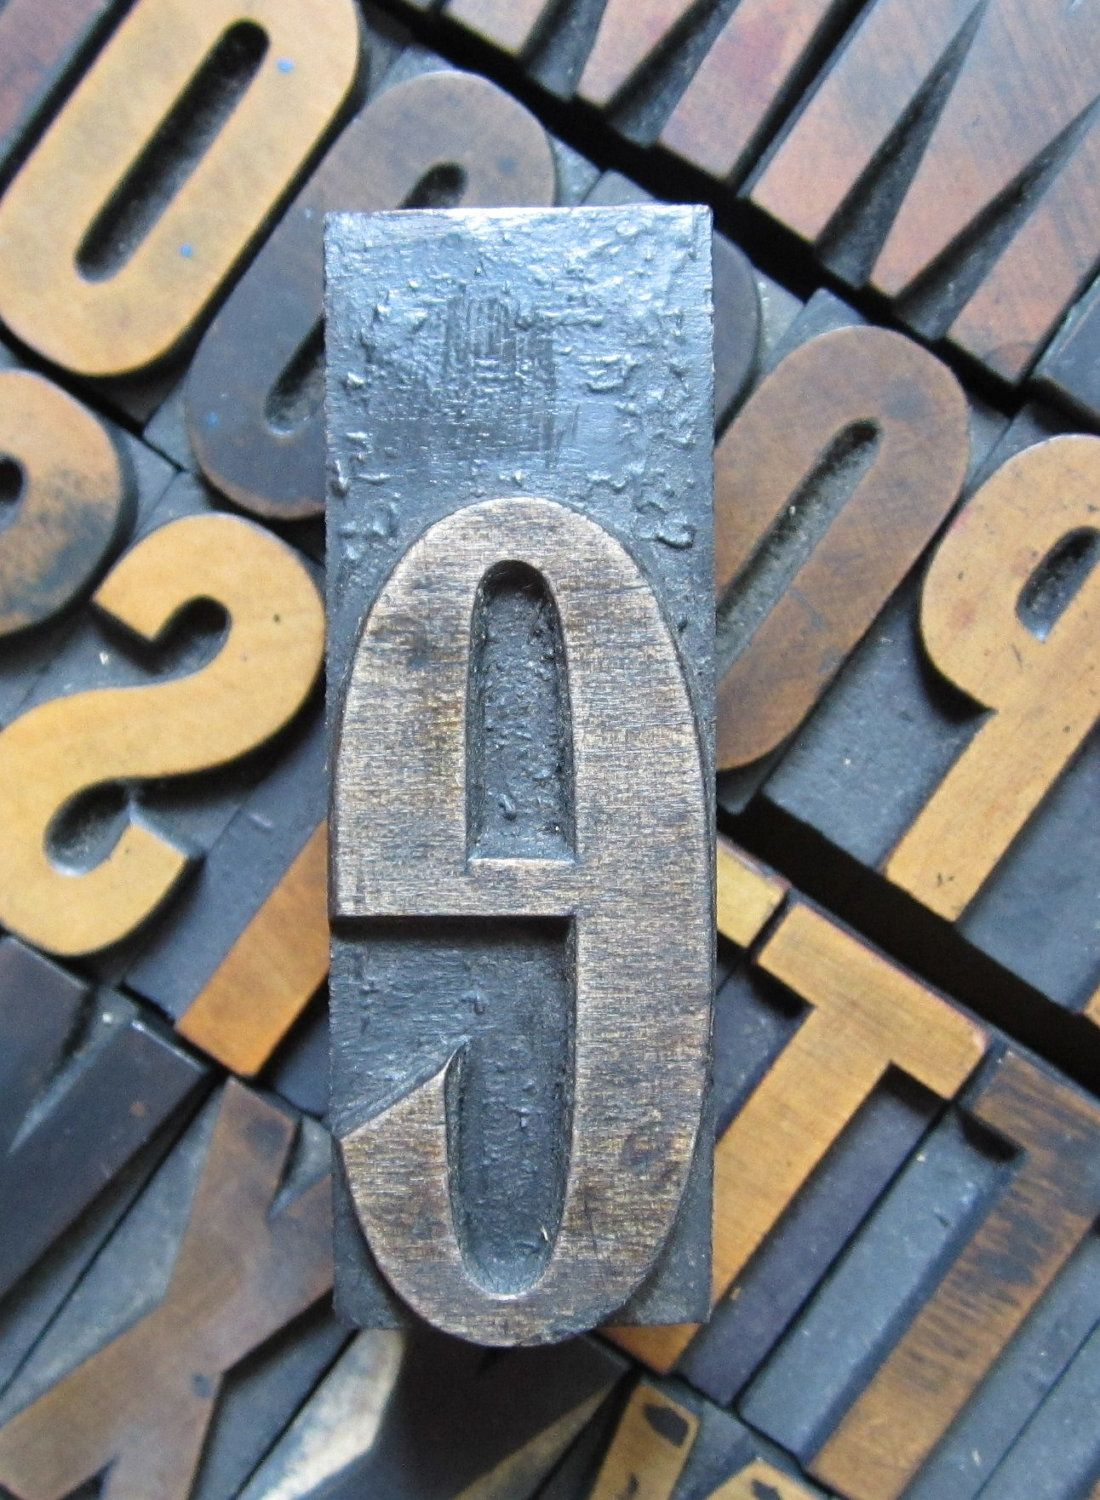 Antique Letterpress Wood Type Printers Block Letter E